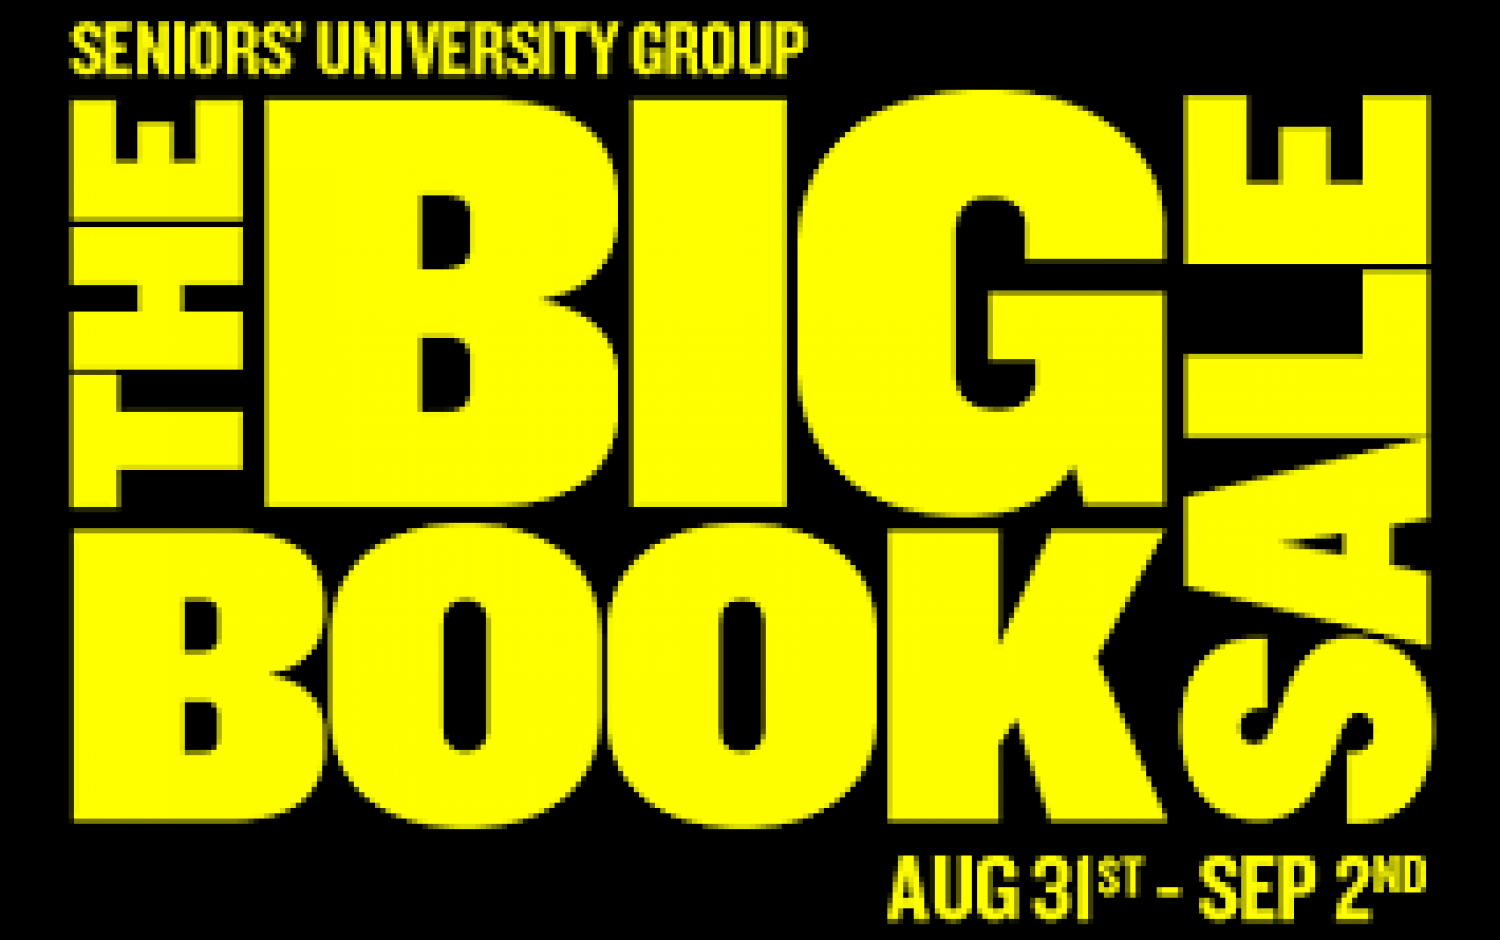 The Big Book Sale!  August 31 - Sept 2 at the Tartan Curling Club.   Come and Buy Books at Great Prices.